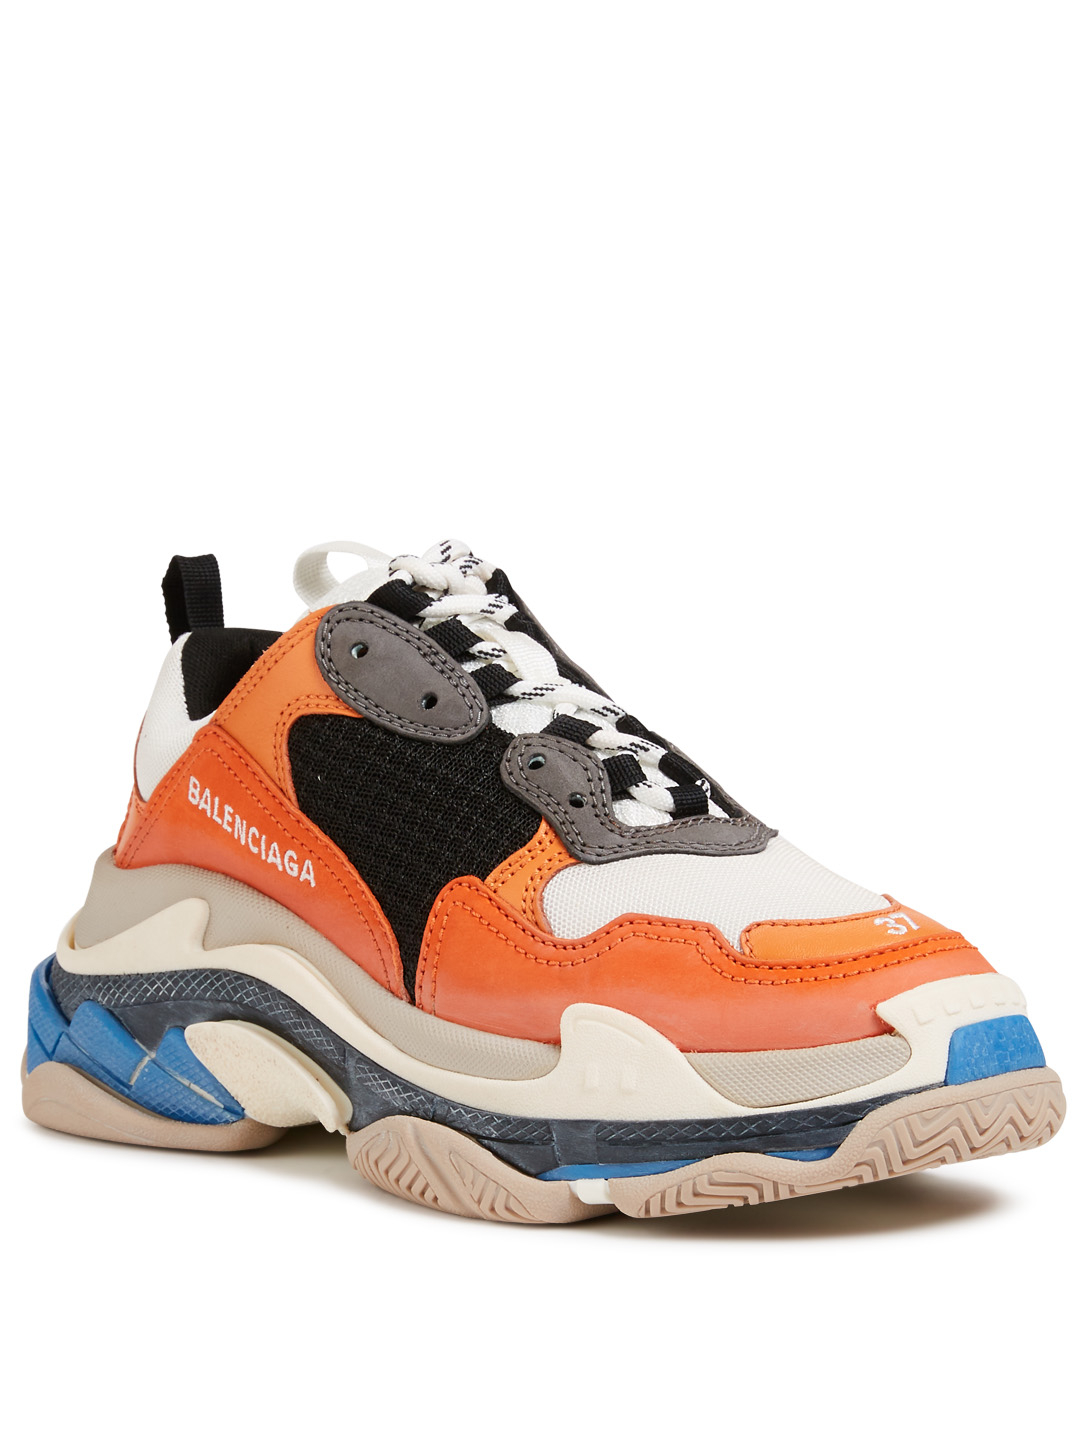 BALENCIAGA Triple S Sneakers Women's Orange